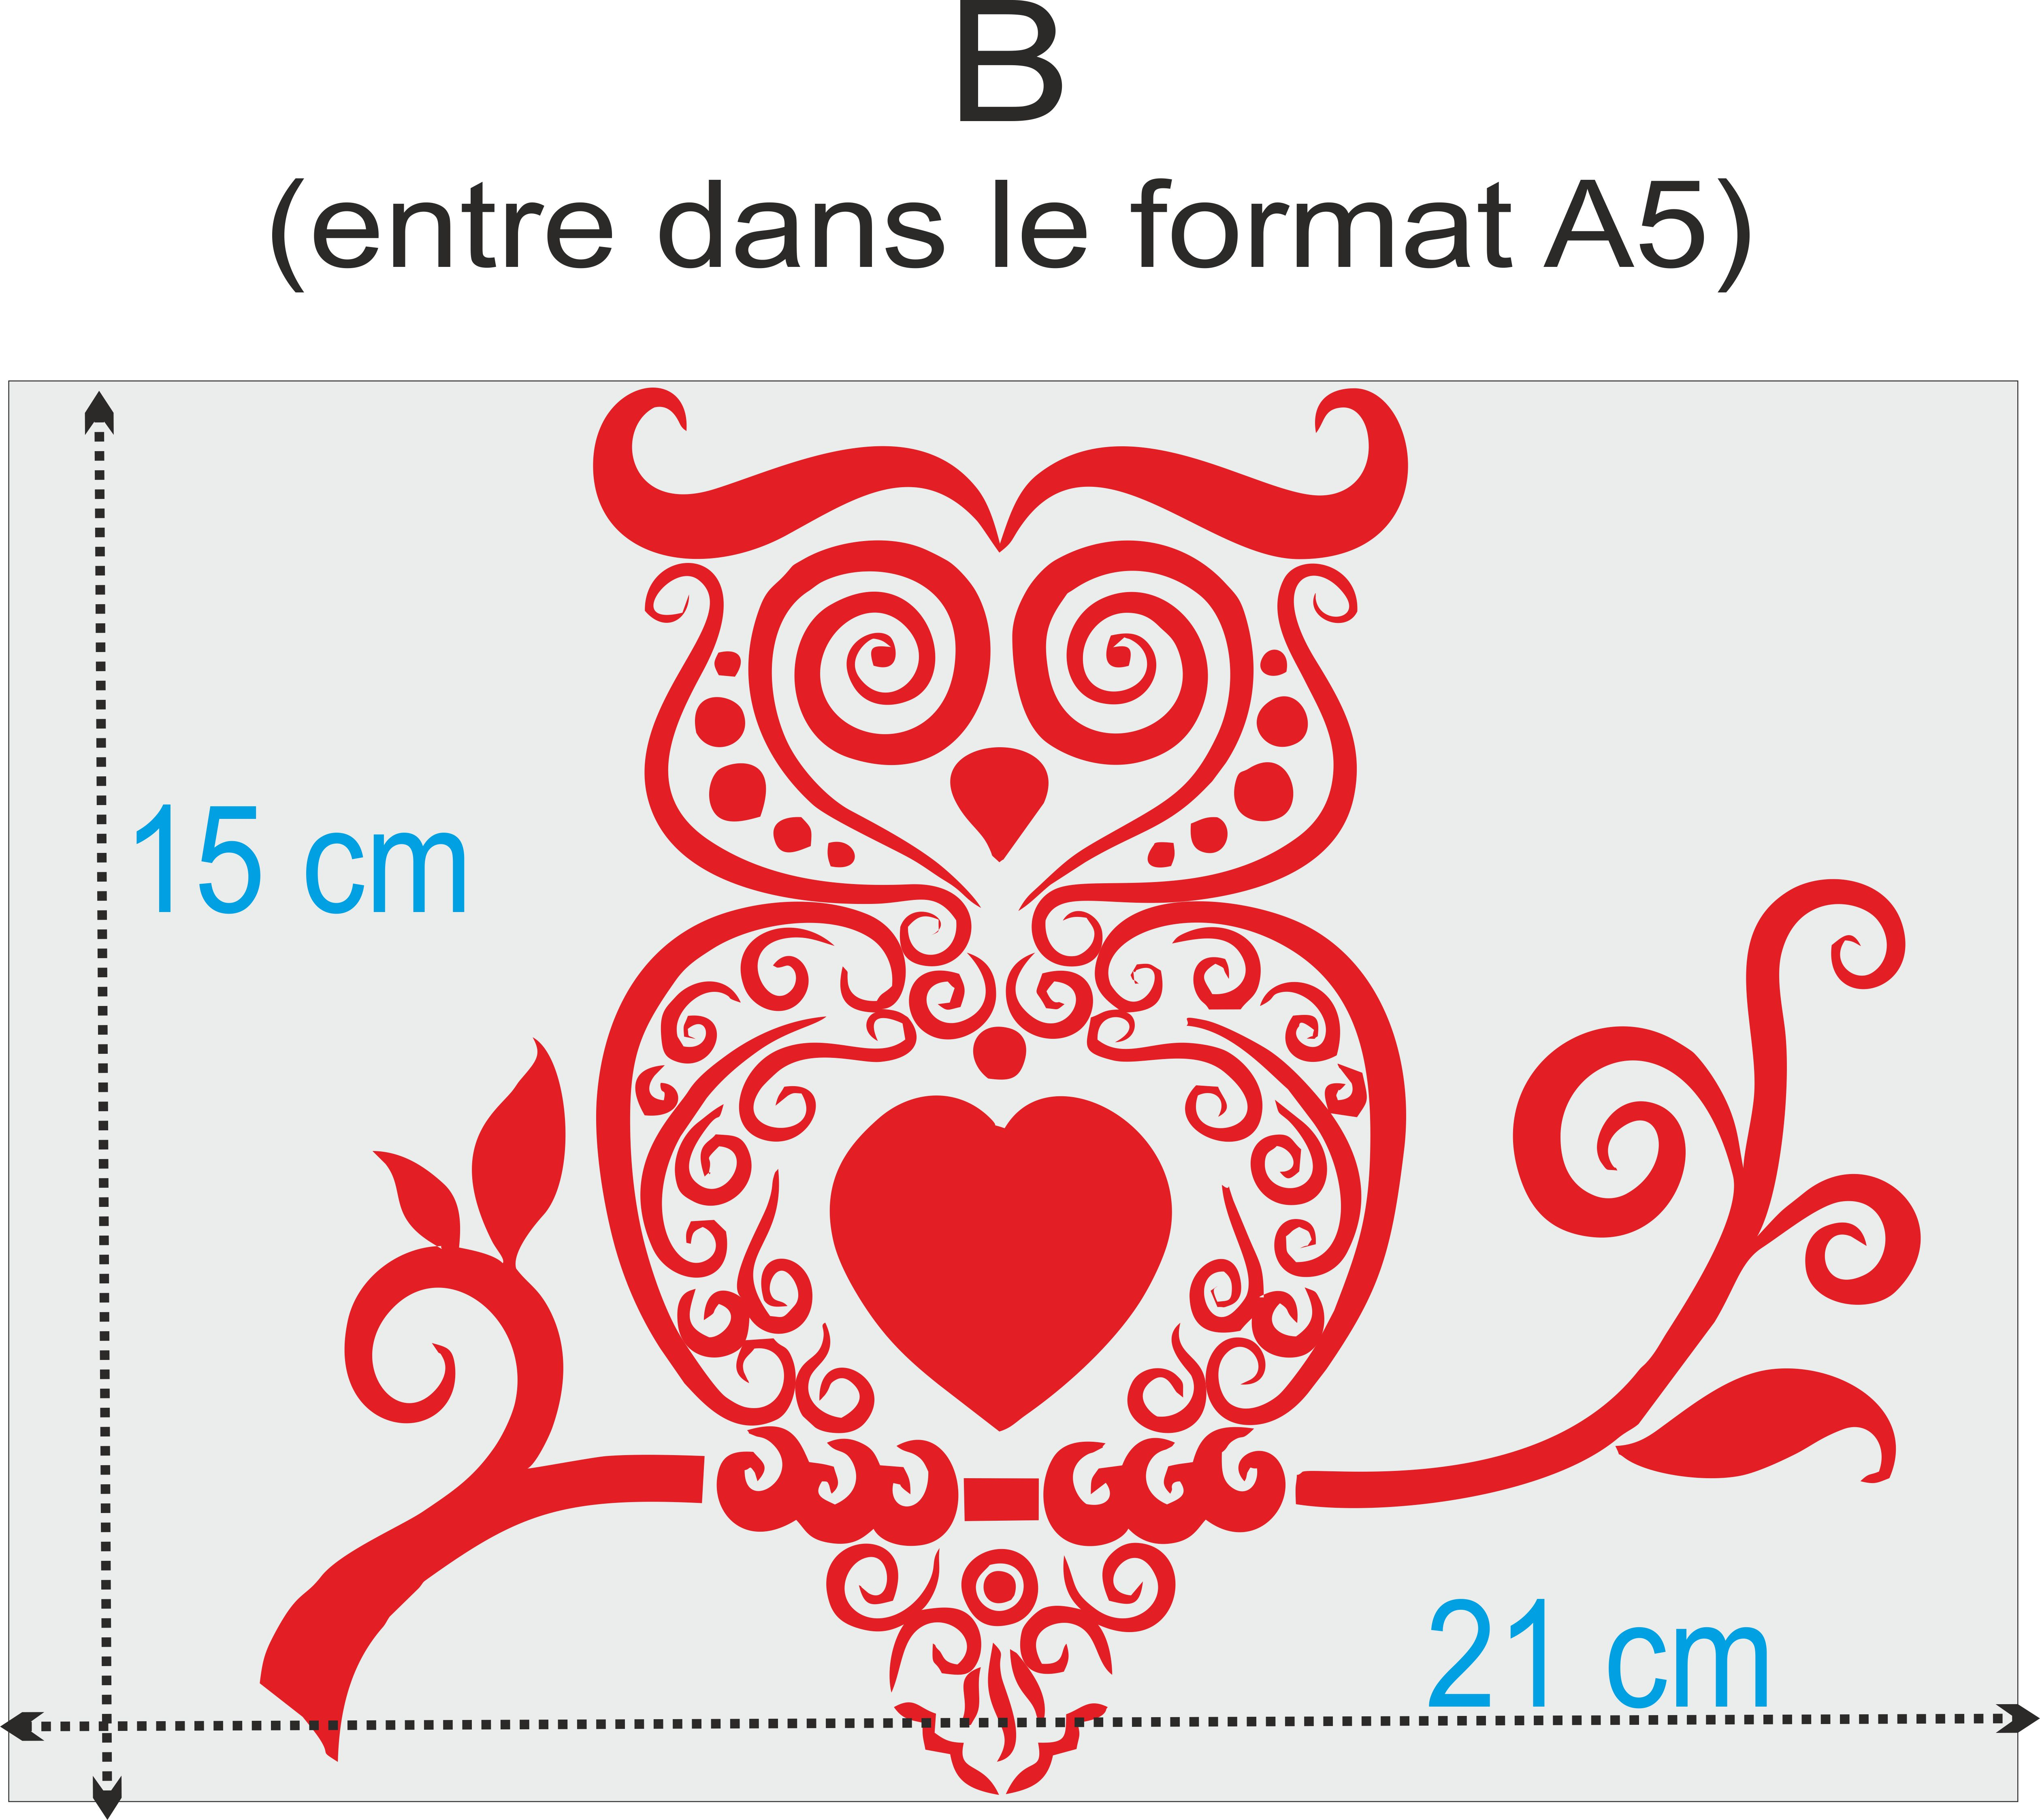 image taille sticker a5